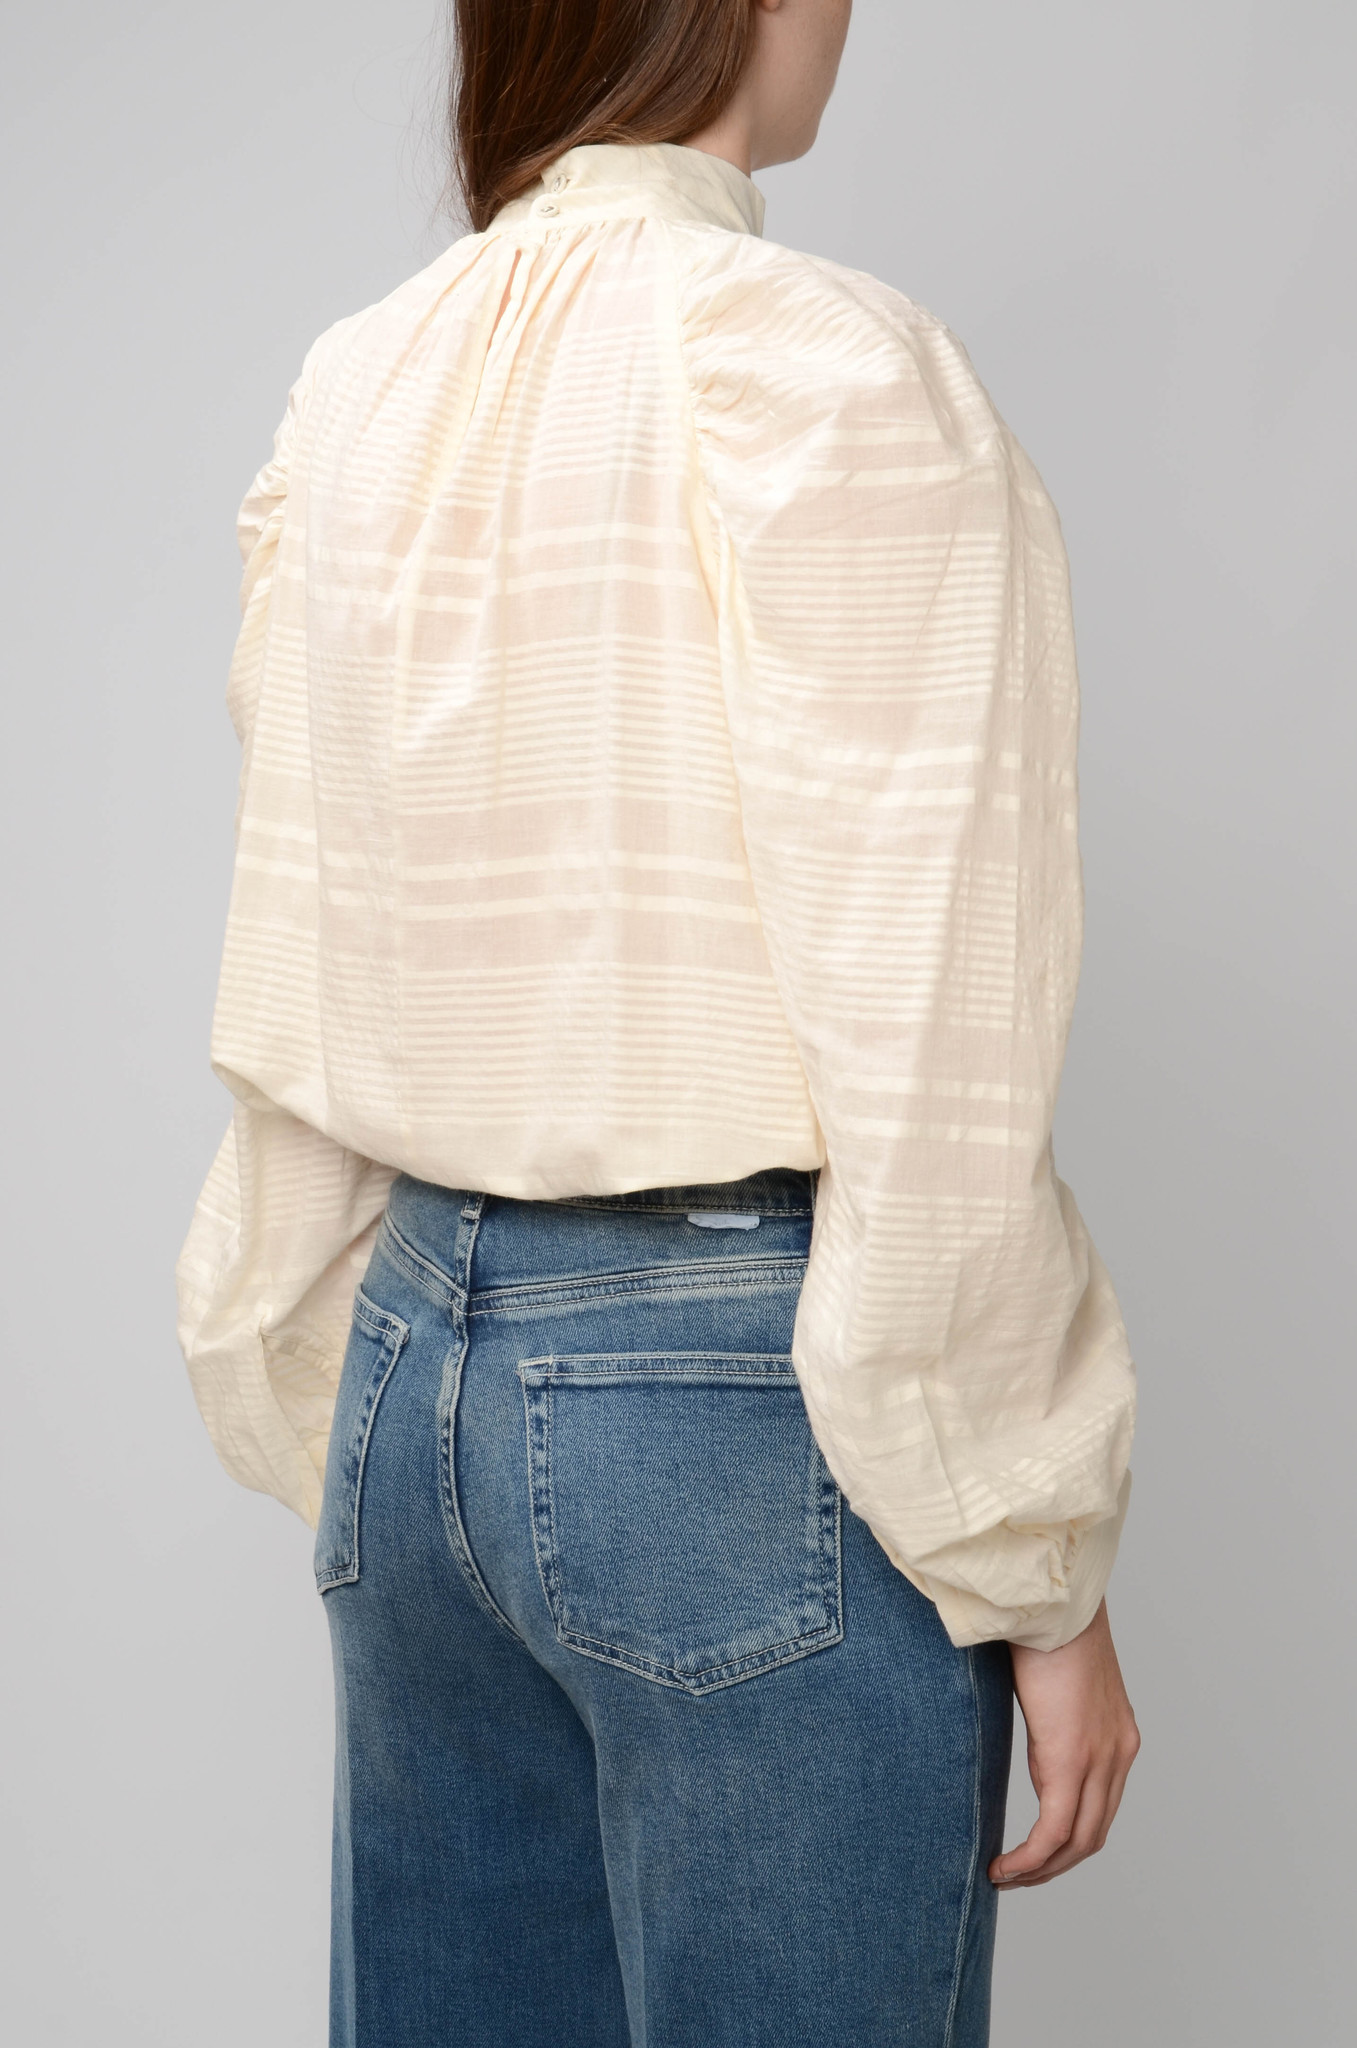 ASTA BLOUSE IN OFF WHITE-4